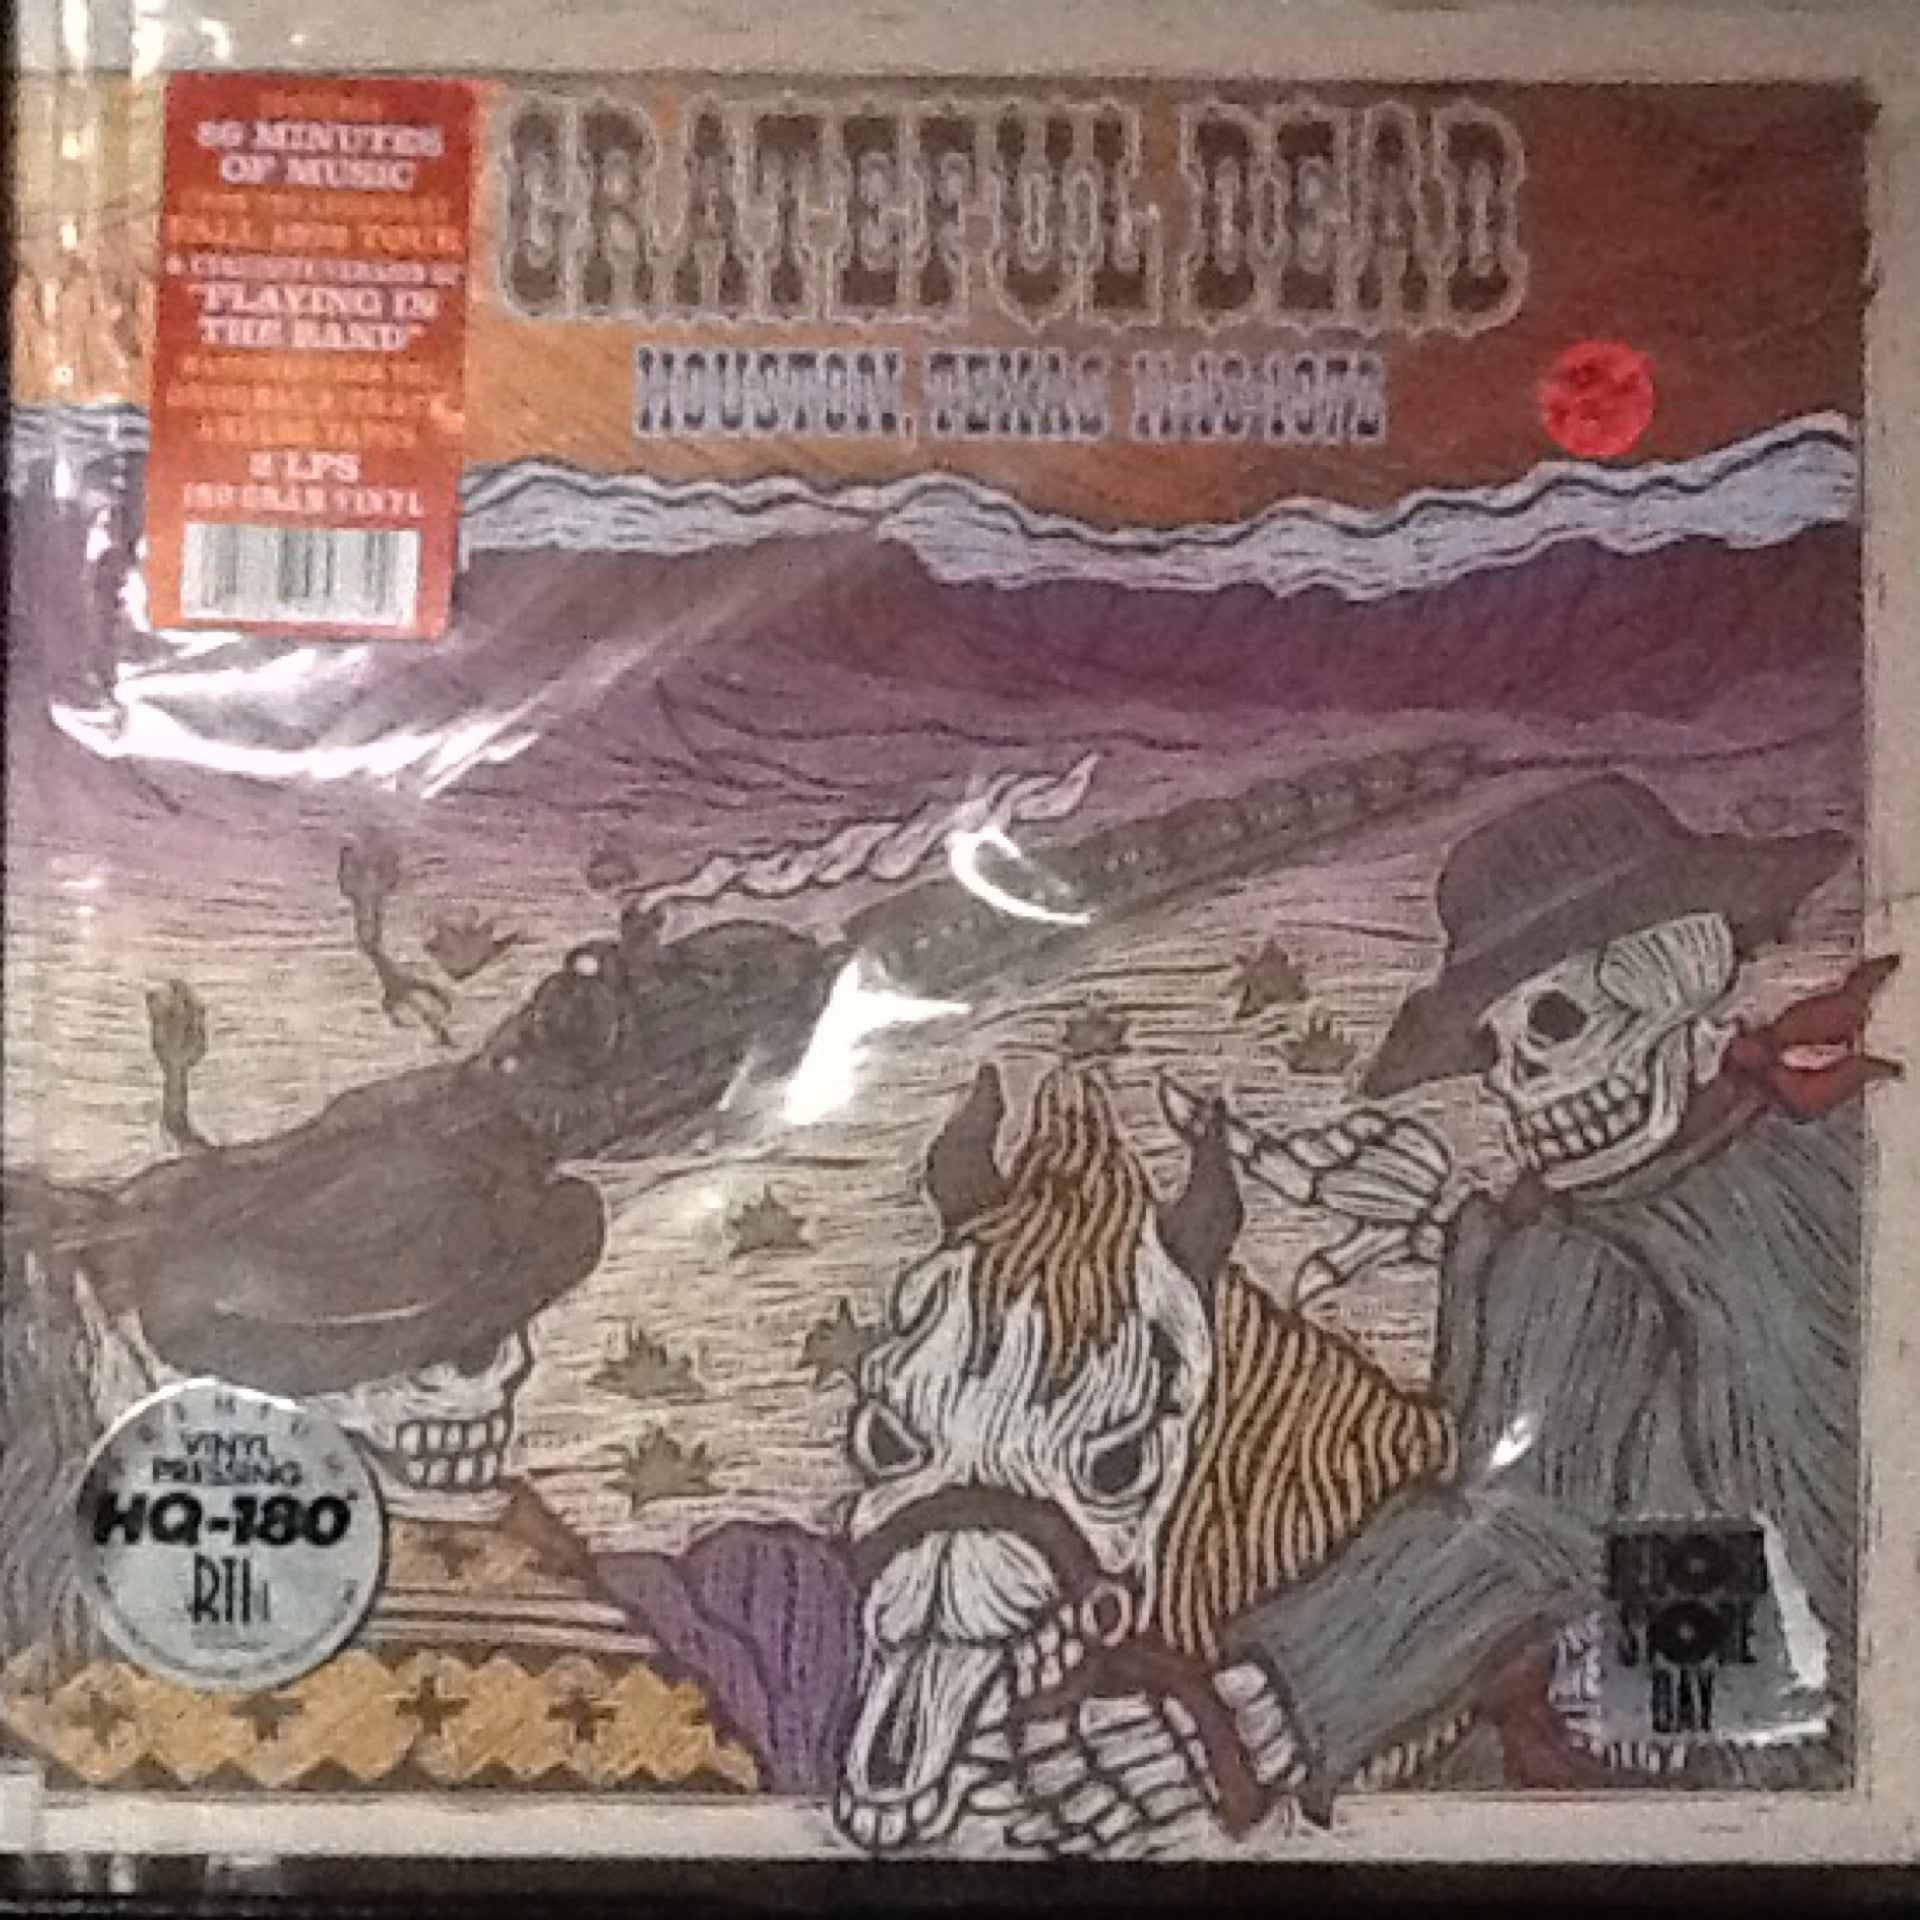 Greatful Dead - Houston, Texas 11-18-1972 LP